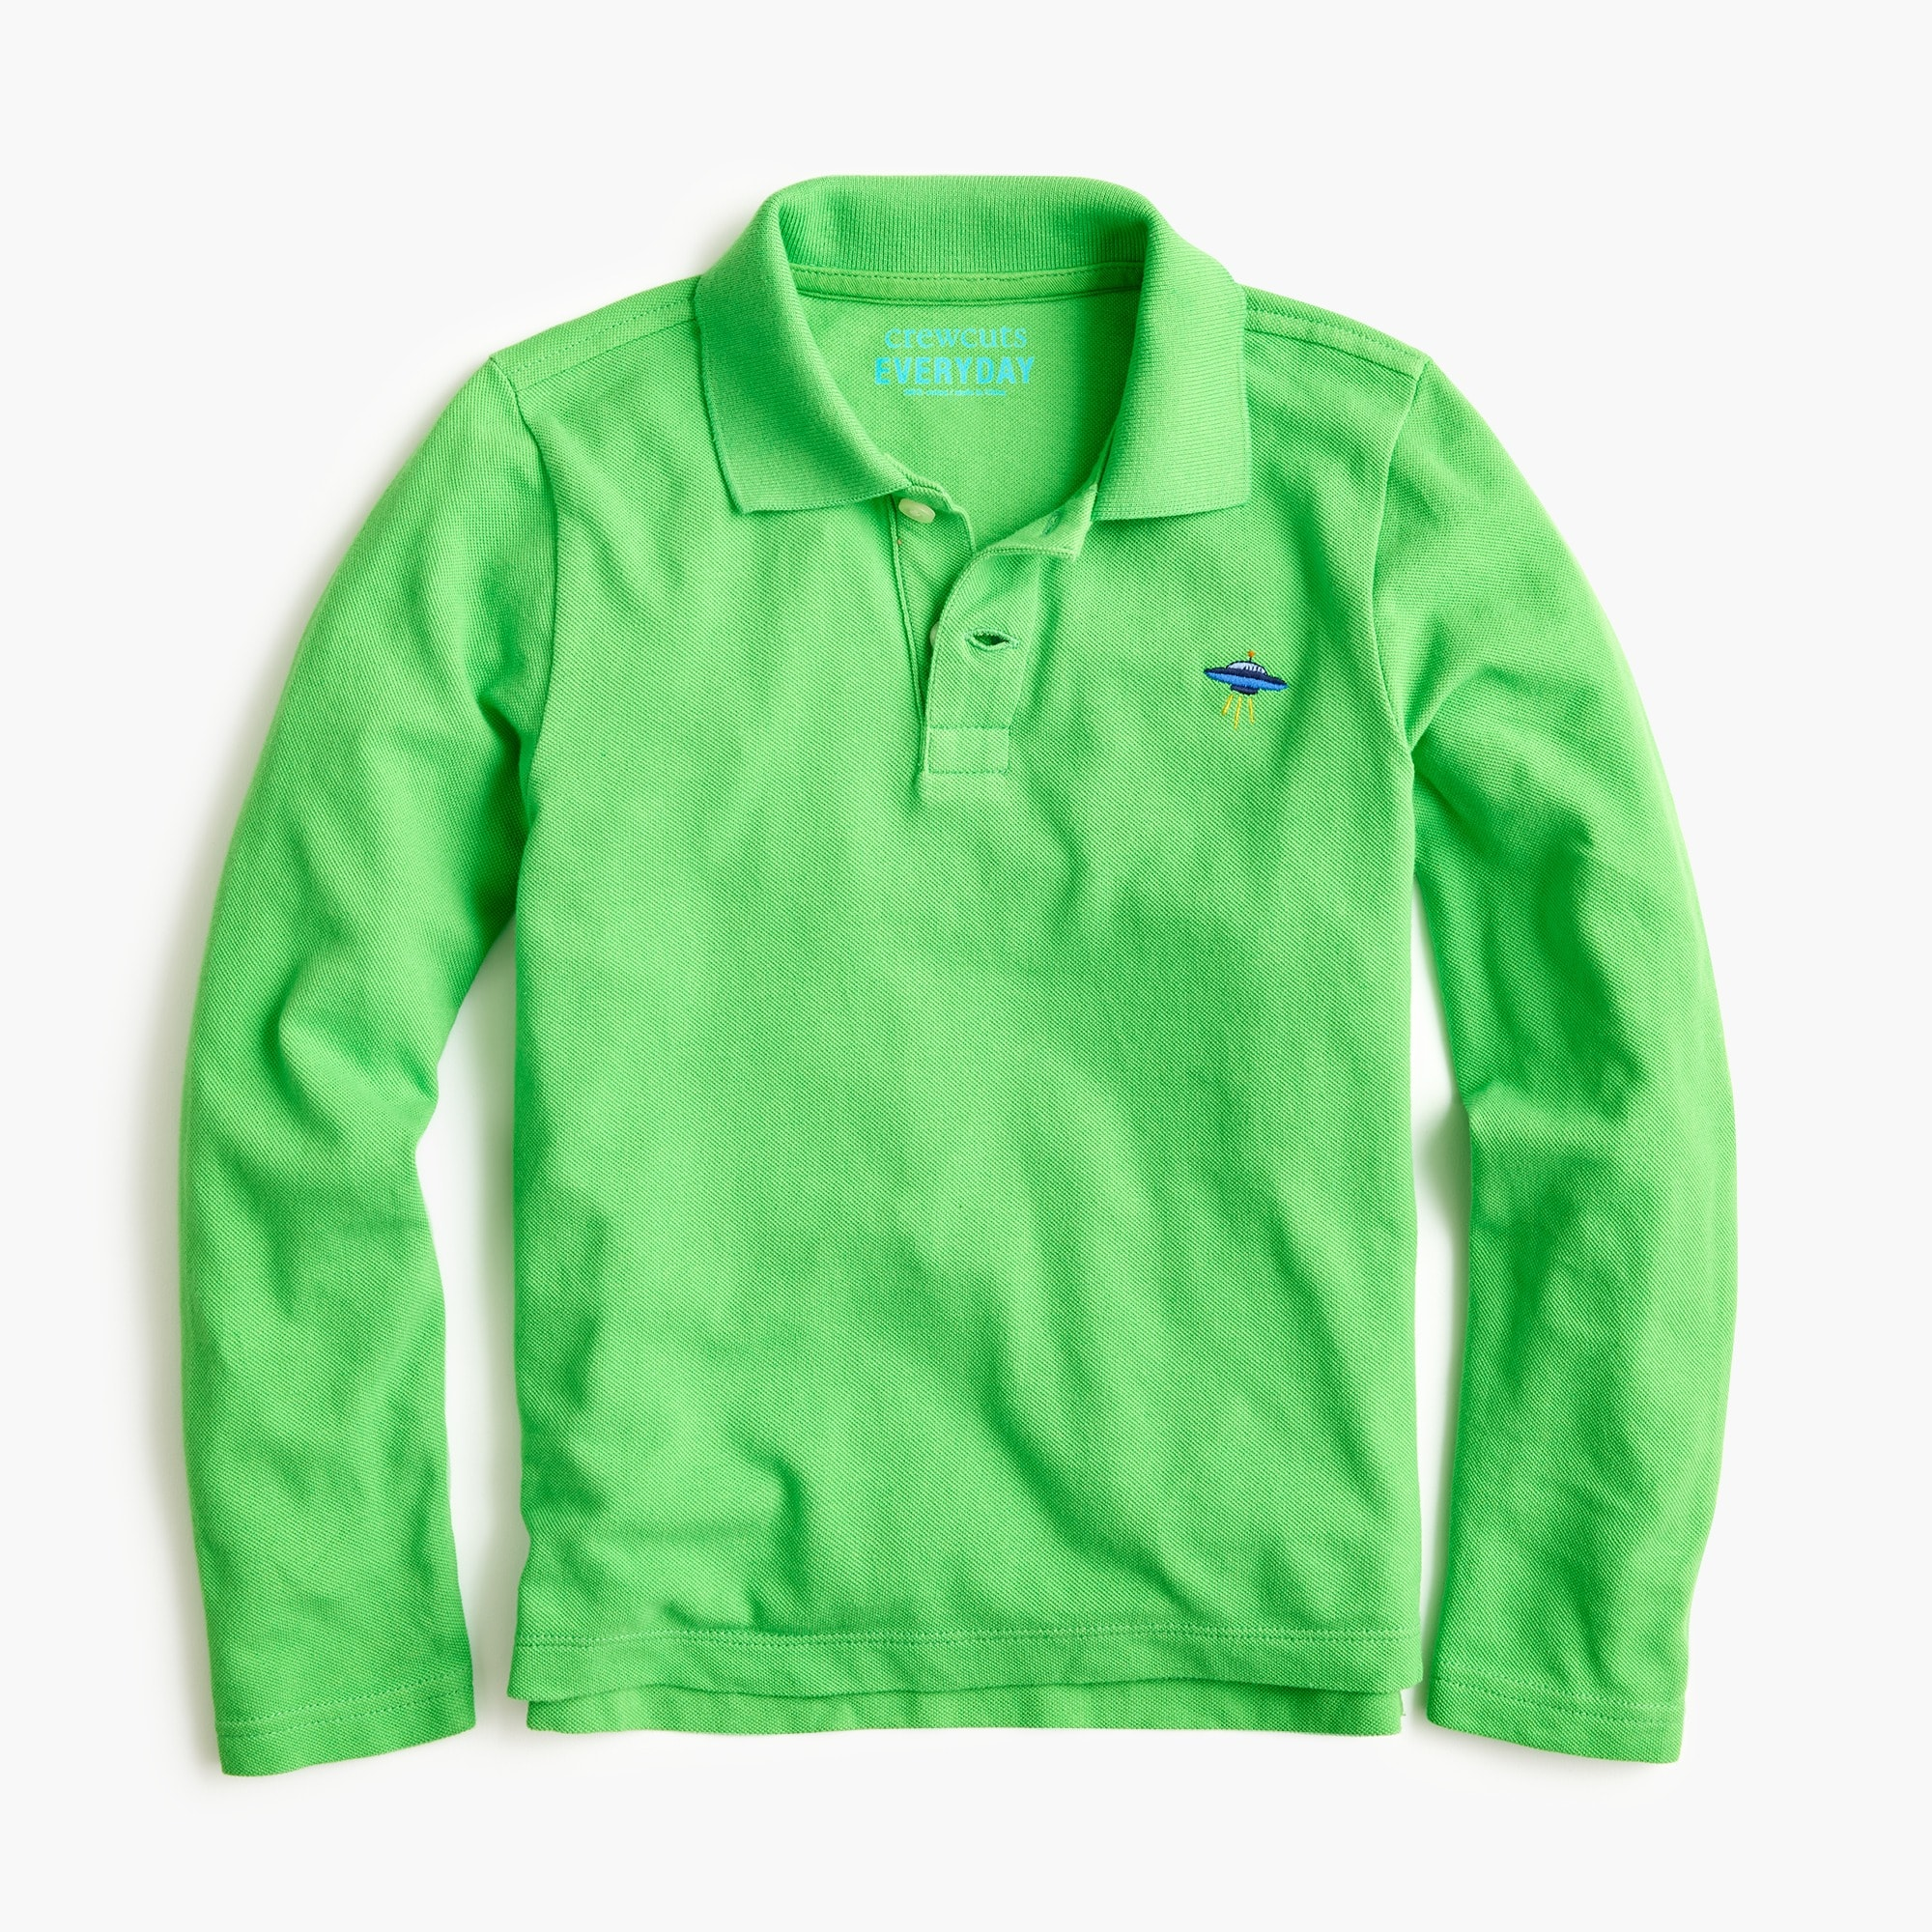 boys Boys' long-sleeve critter polo shirt